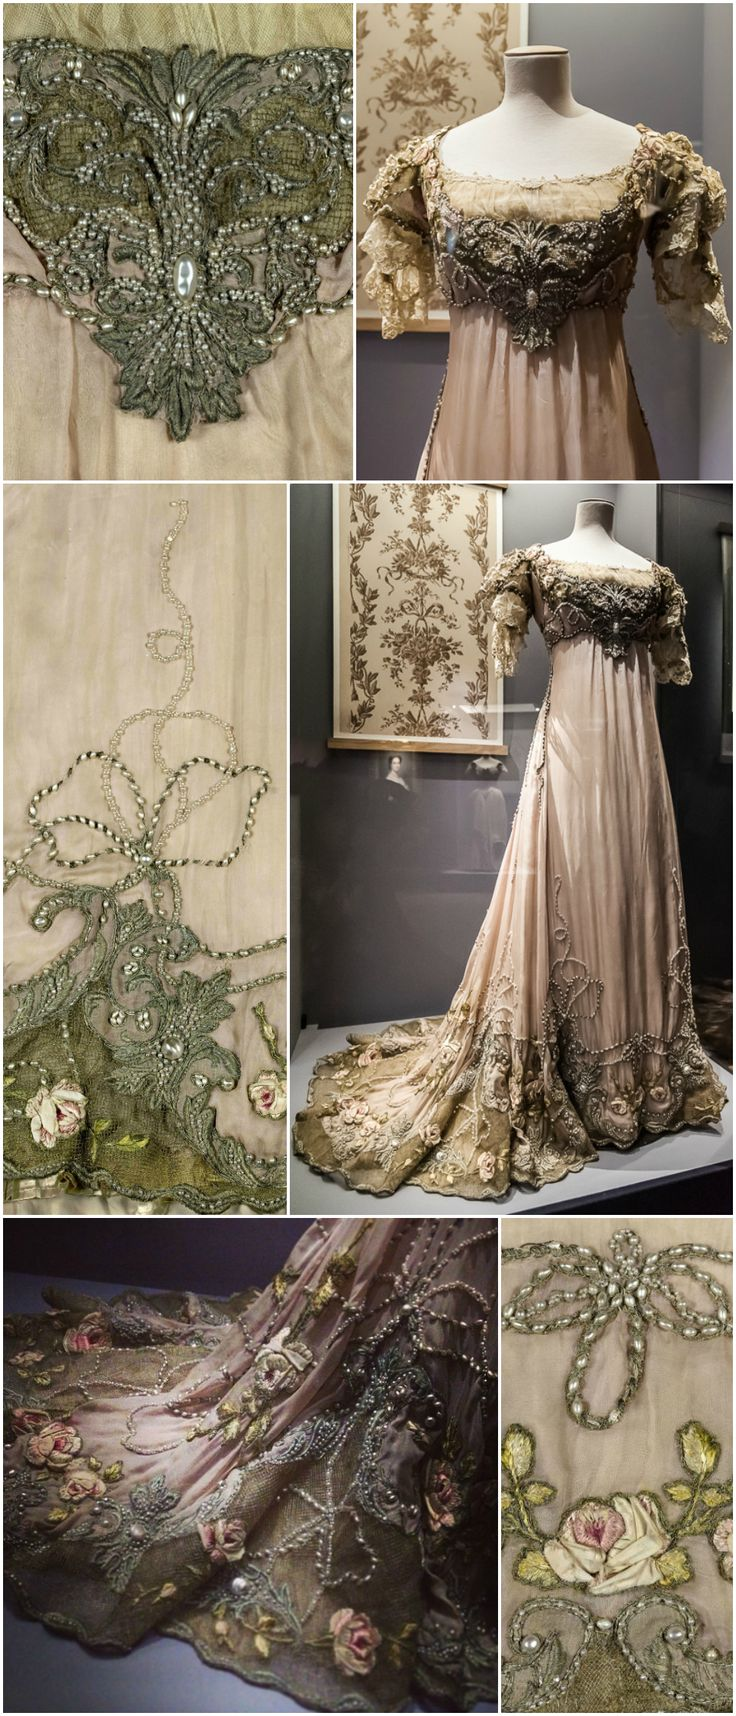 Evening dress by Redfern, 1903-13, at the Palais Galliera, musée de la Mode de la Ville de Paris. Worn by Anna Gould.